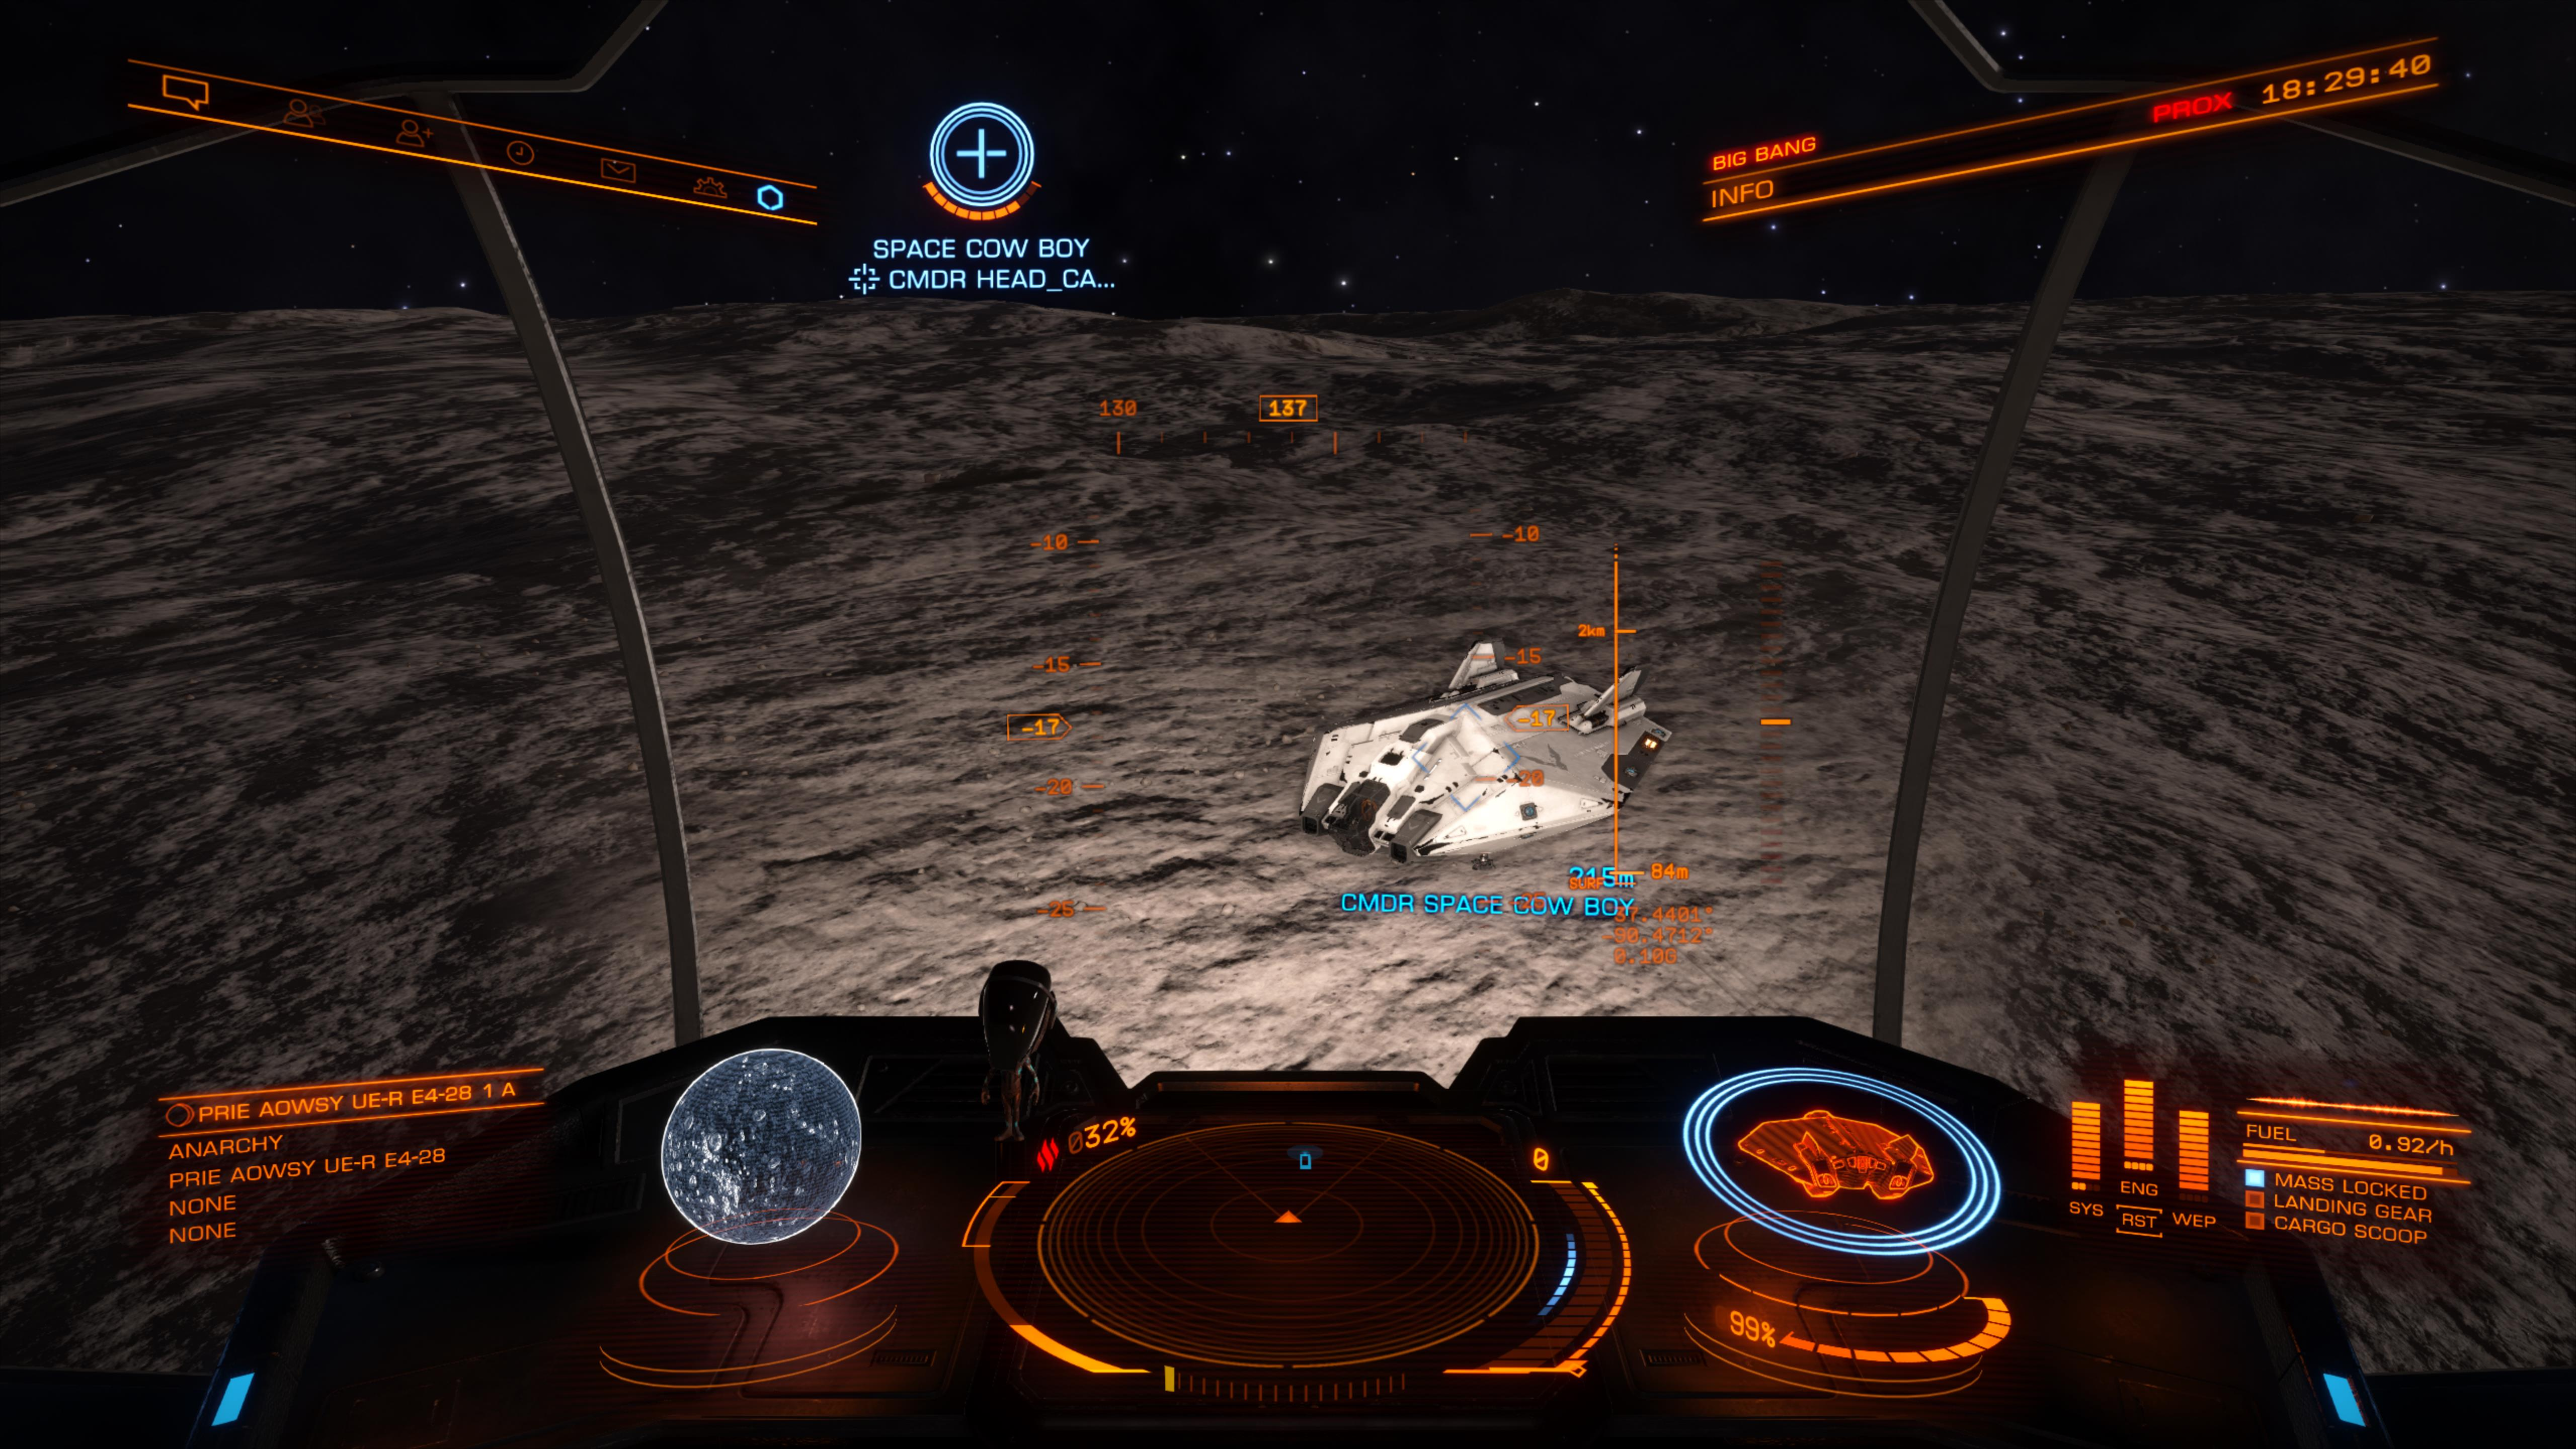 Hovering over and illuminating CMDR Space Cow Boy's ship waiting for him to start engines